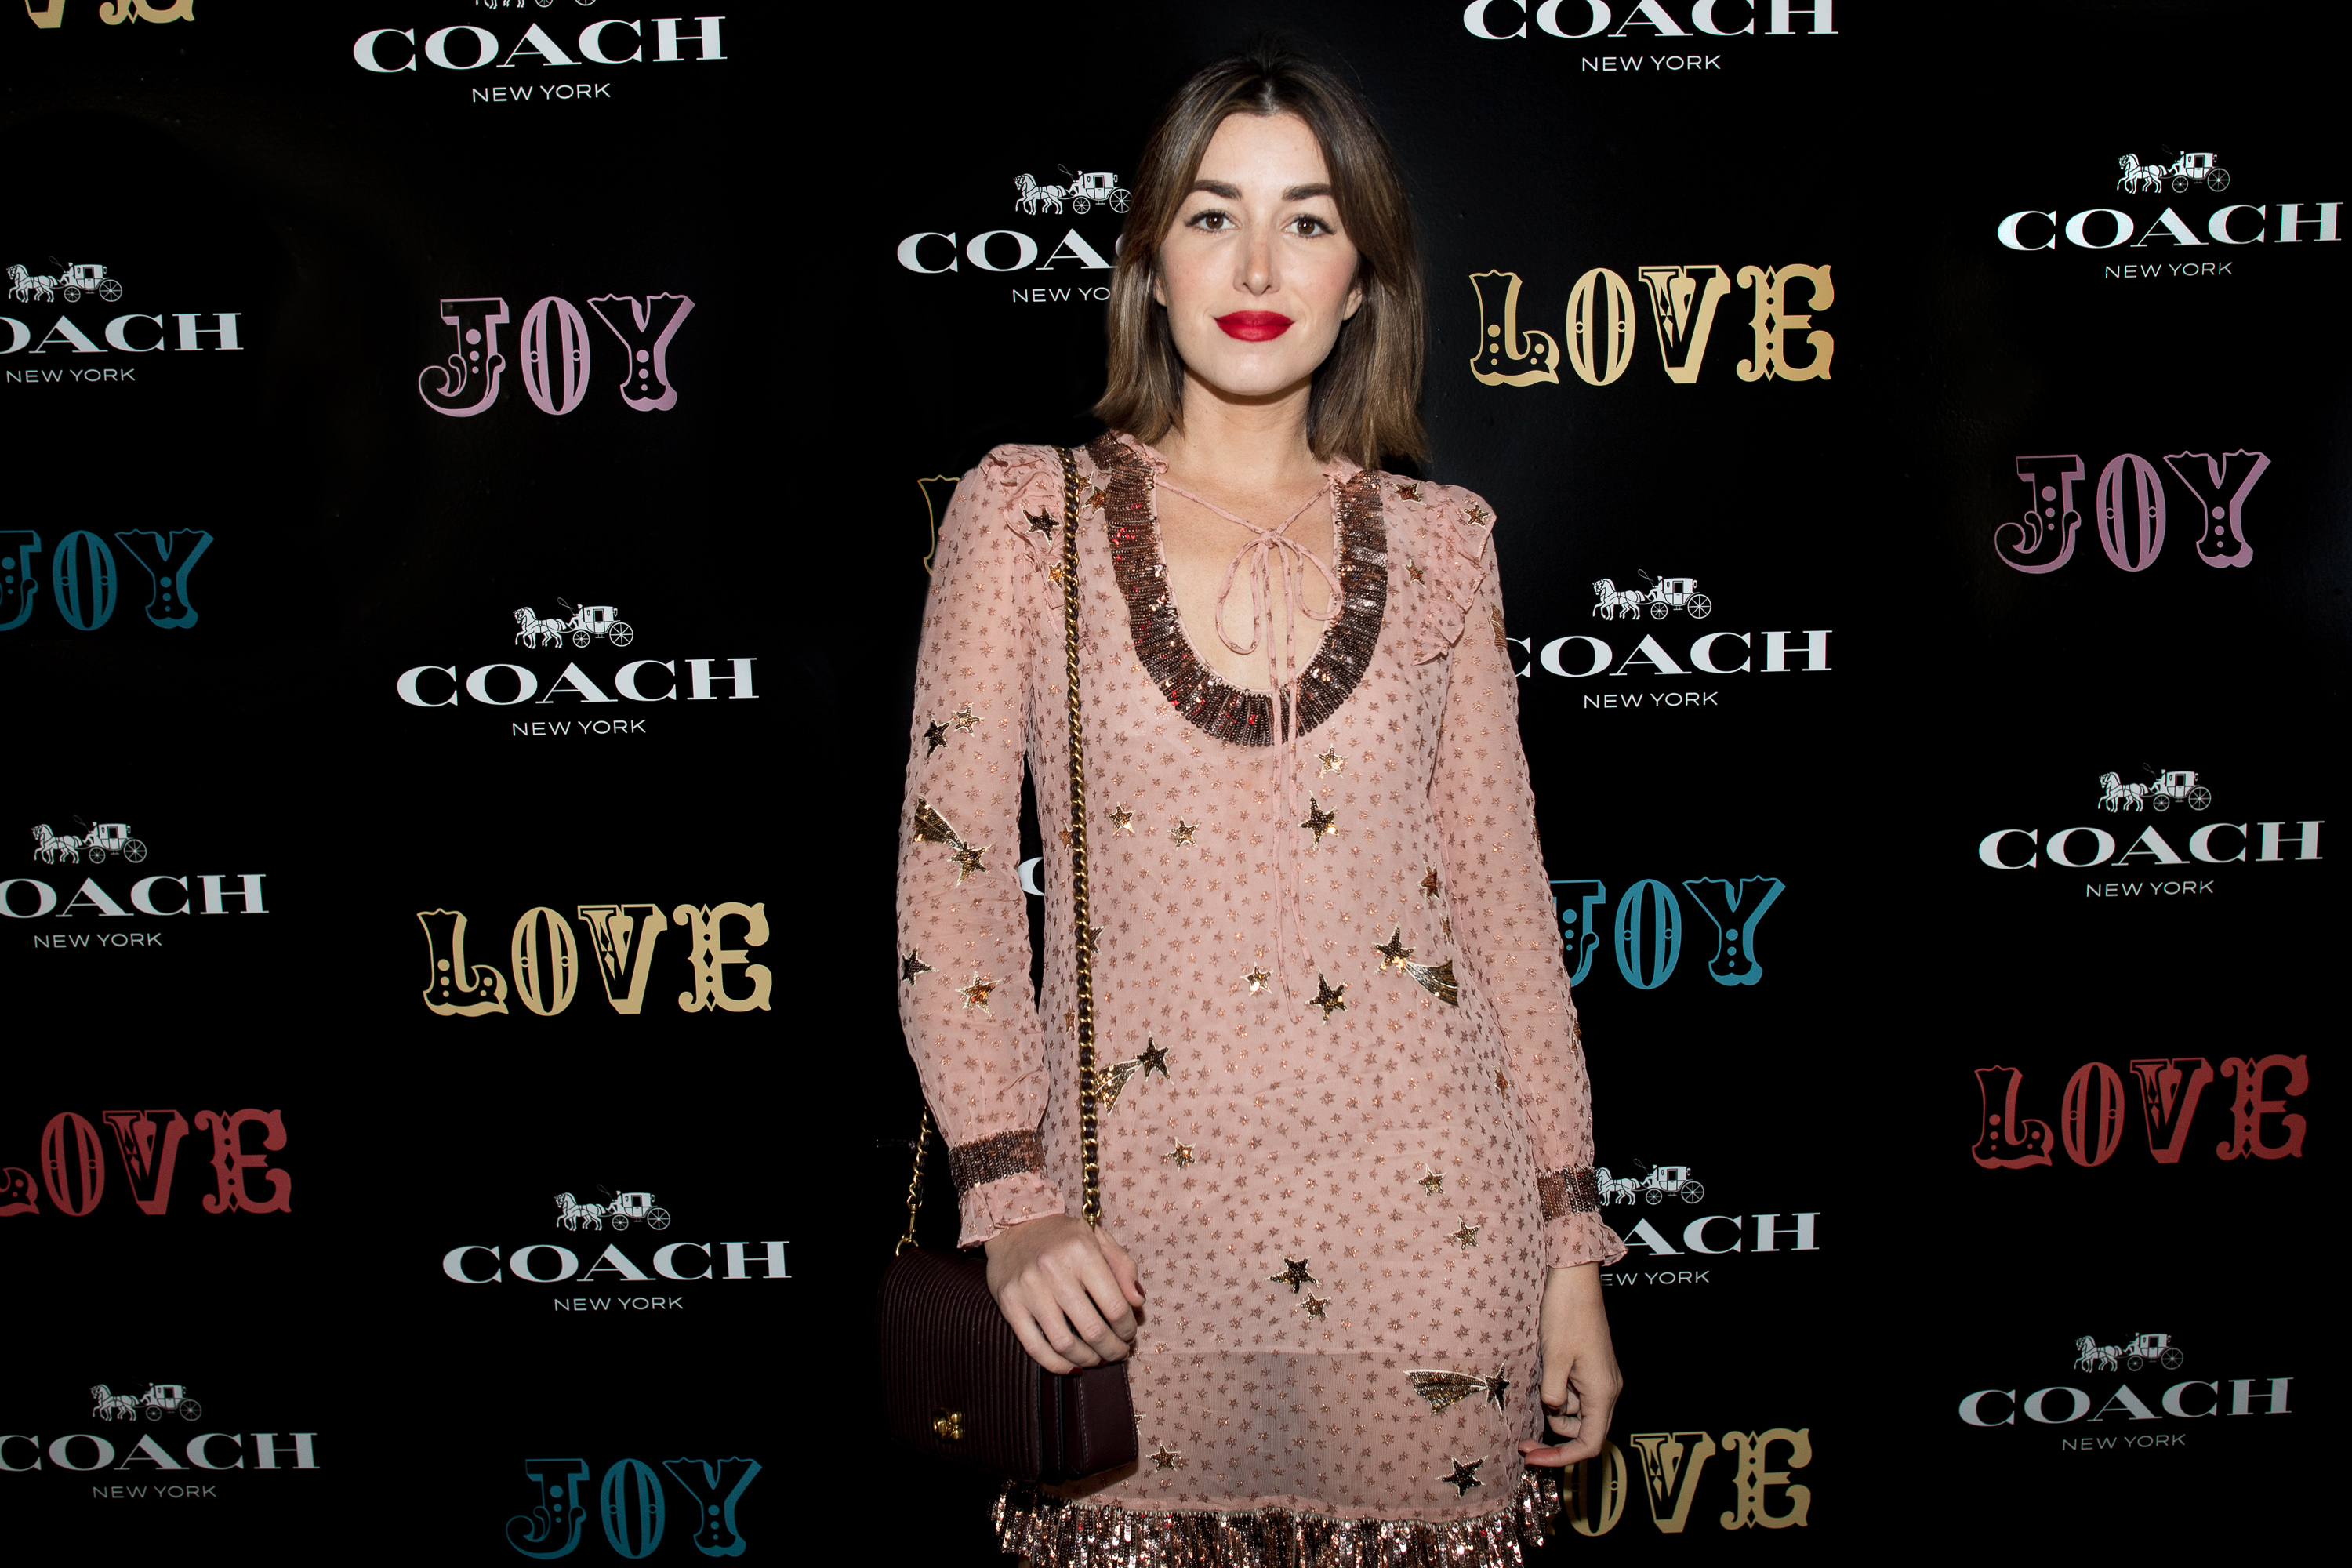 <p>Another week, another luxury store opening butCoachdecided to step outside of the Sydney Westfield box to celebrate their latest boutique.</p> <p>To fit with the American label's recent image upgrade Coach called on every Instagram star worth their likes to trudge up the stairs of former rock haunt Kinsellas in Taylor Square.</p> <p>Squeezed into Stuart Vevers Western-influenced designs, the social set gravitated towards the photo walls to spread the word of the new store's arrivals, before moving onto the bowling ally and arcade games.</p> <p>Prepare for a bout of influencer influenza and click on.</p> <p>Carmen Hamiltonat the Coach launch, Sydney.</p>